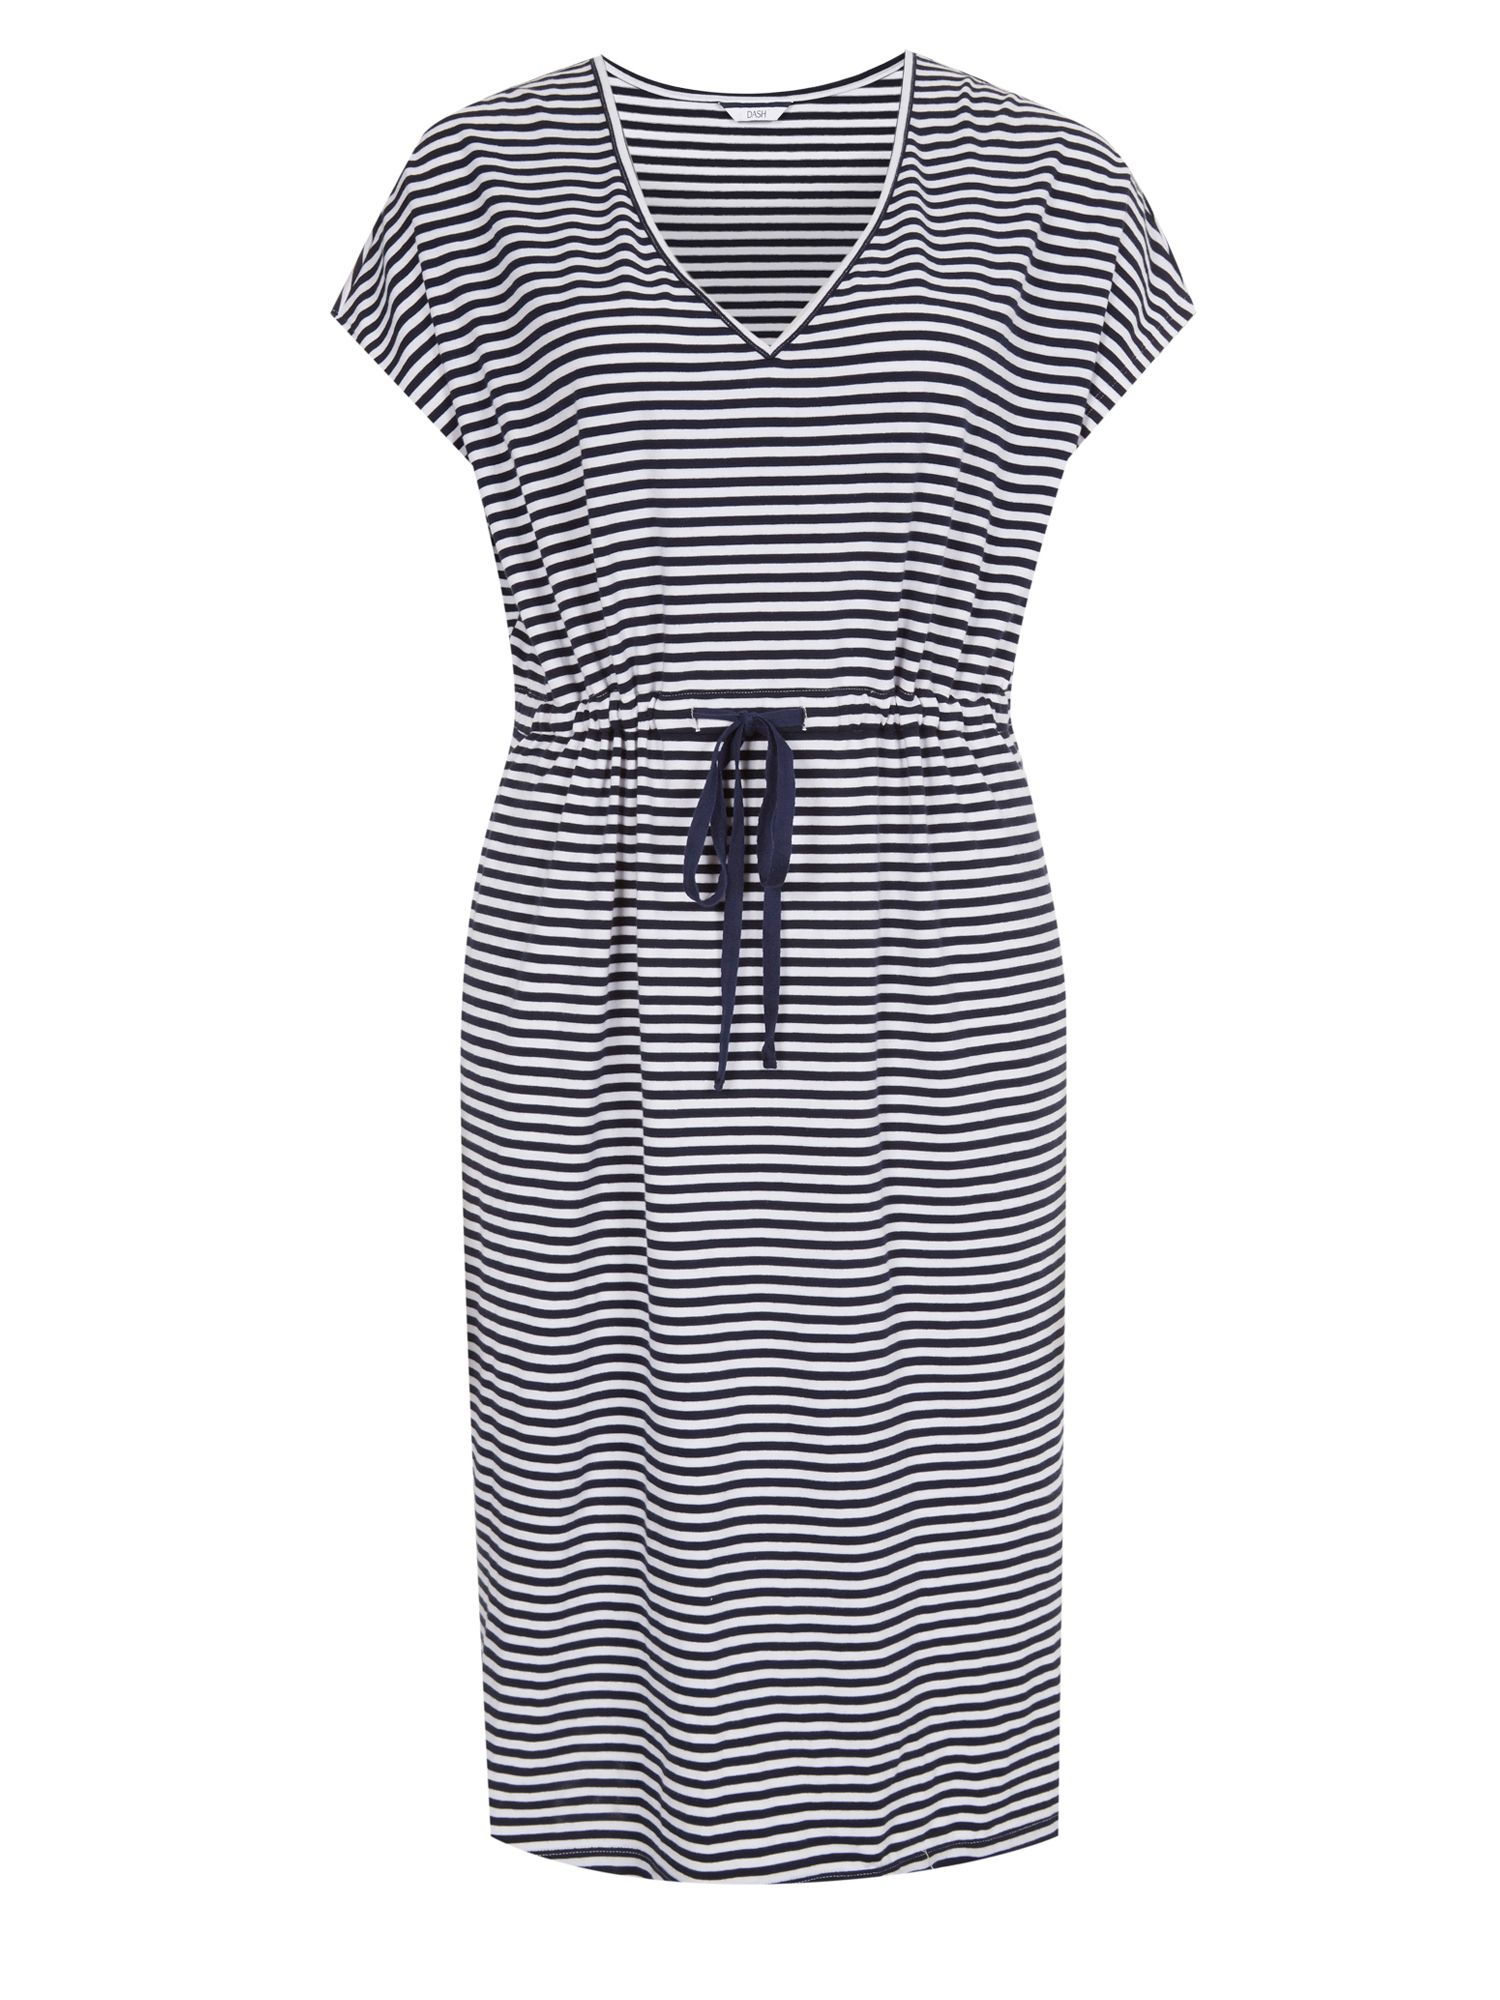 Relaxed tie waist dress